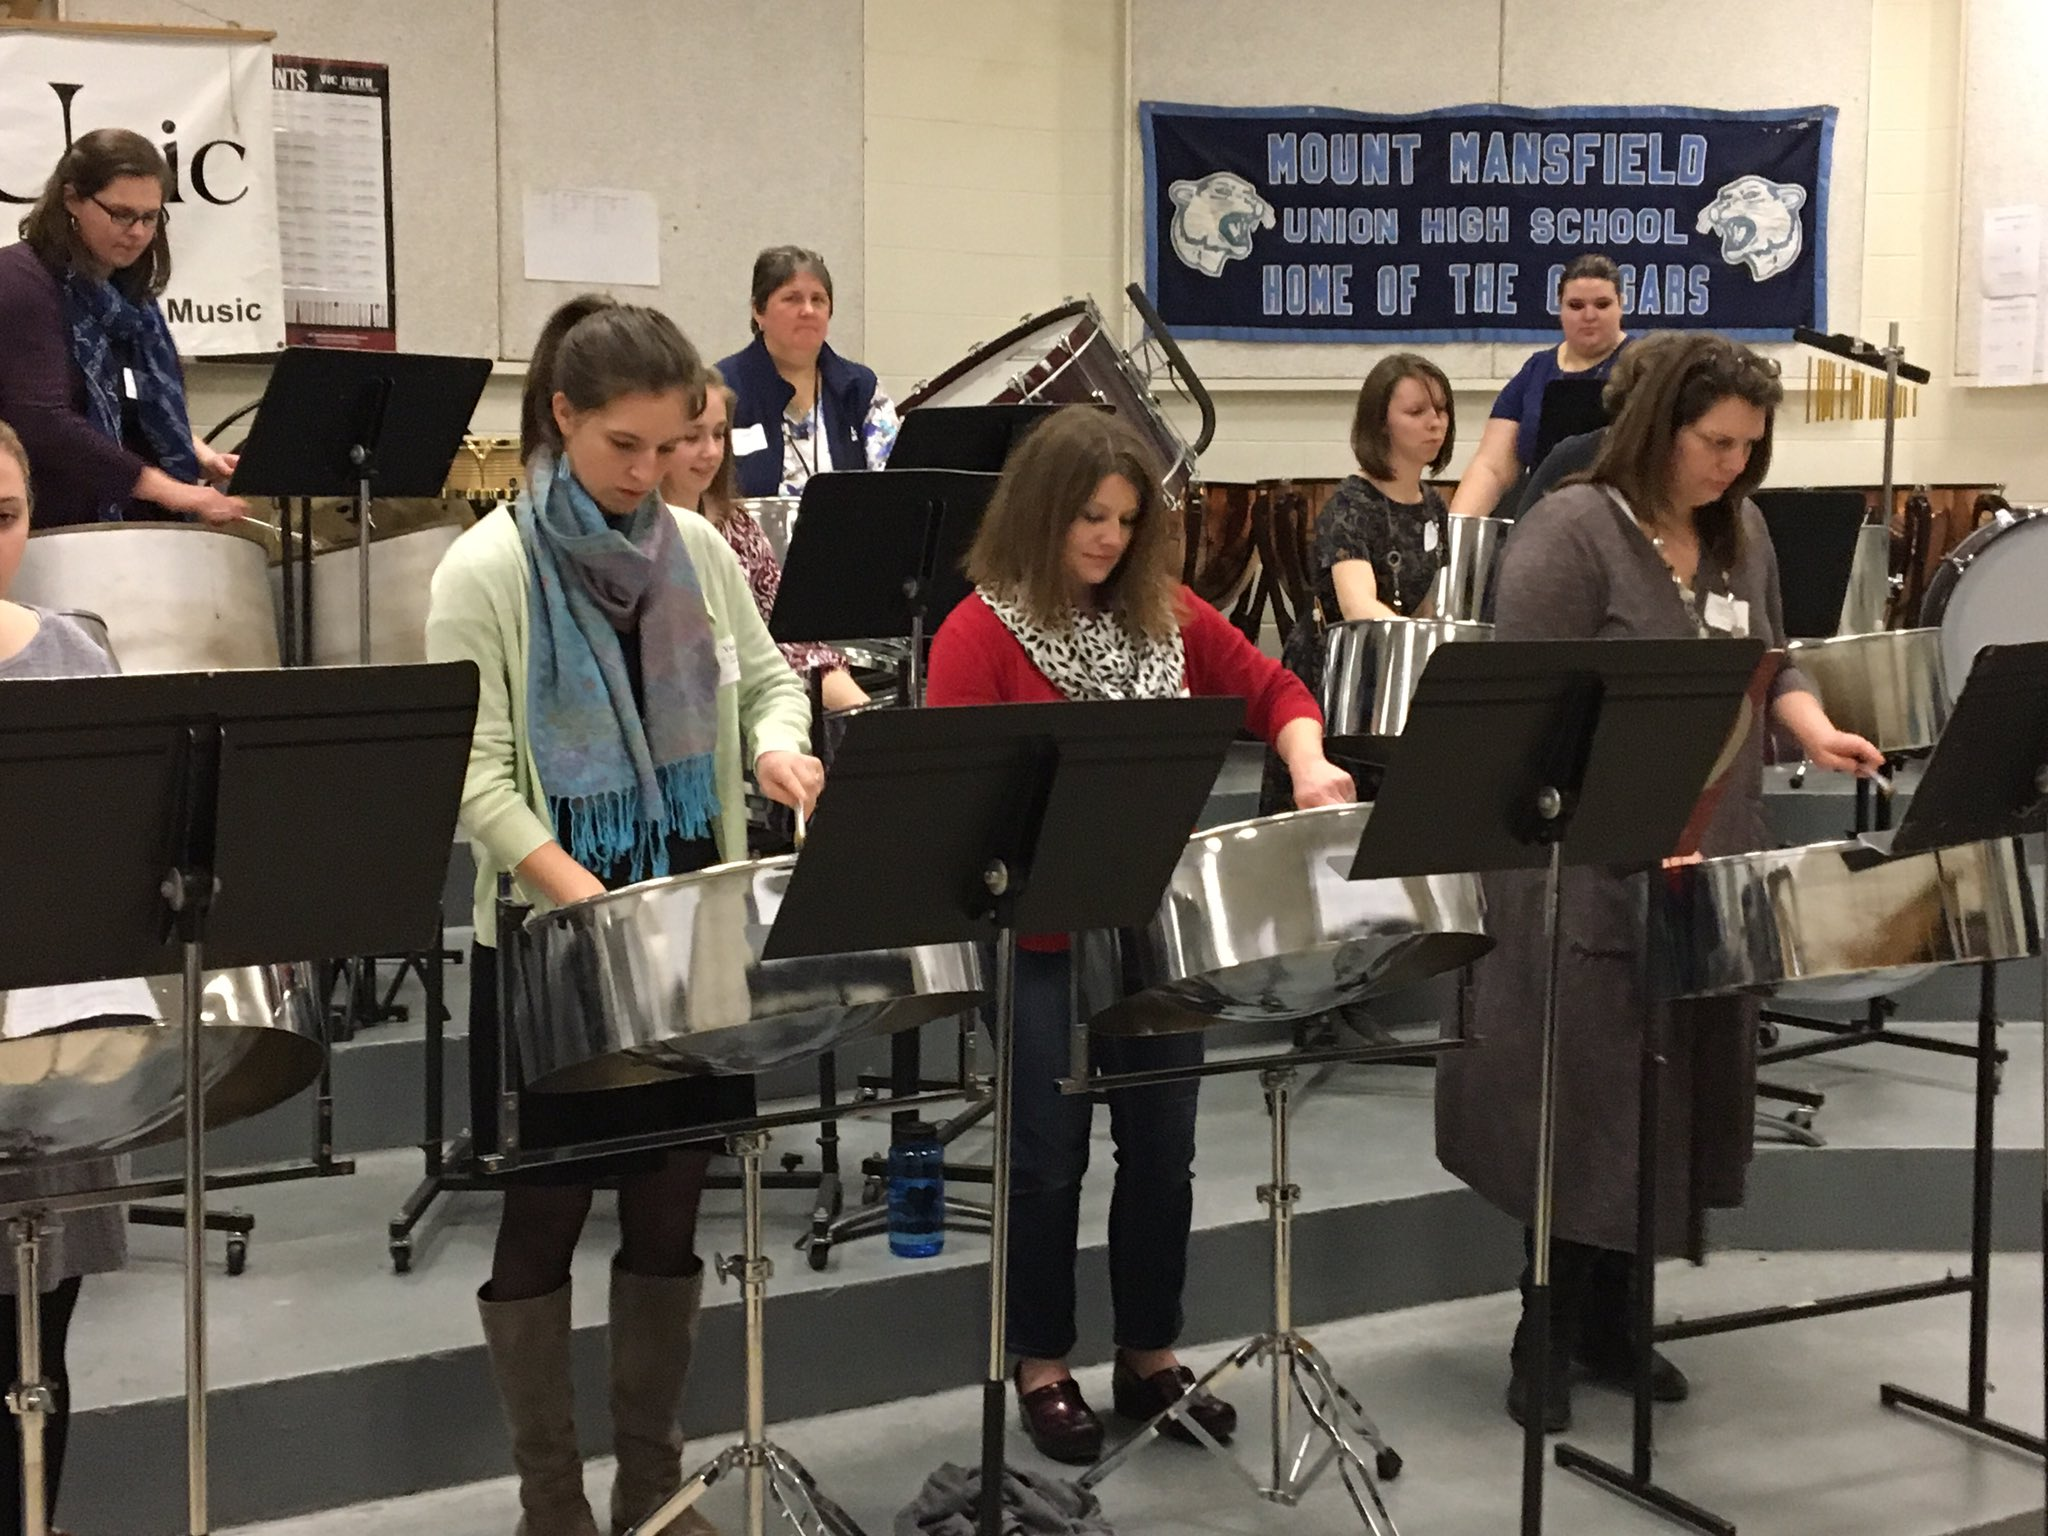 Vermont music educators taking a steel drum workshop at the VMEA elementary choral festival. They also performed at concert!~#MIOSM #NAfME https://t.co/tSPRC9Q5WH